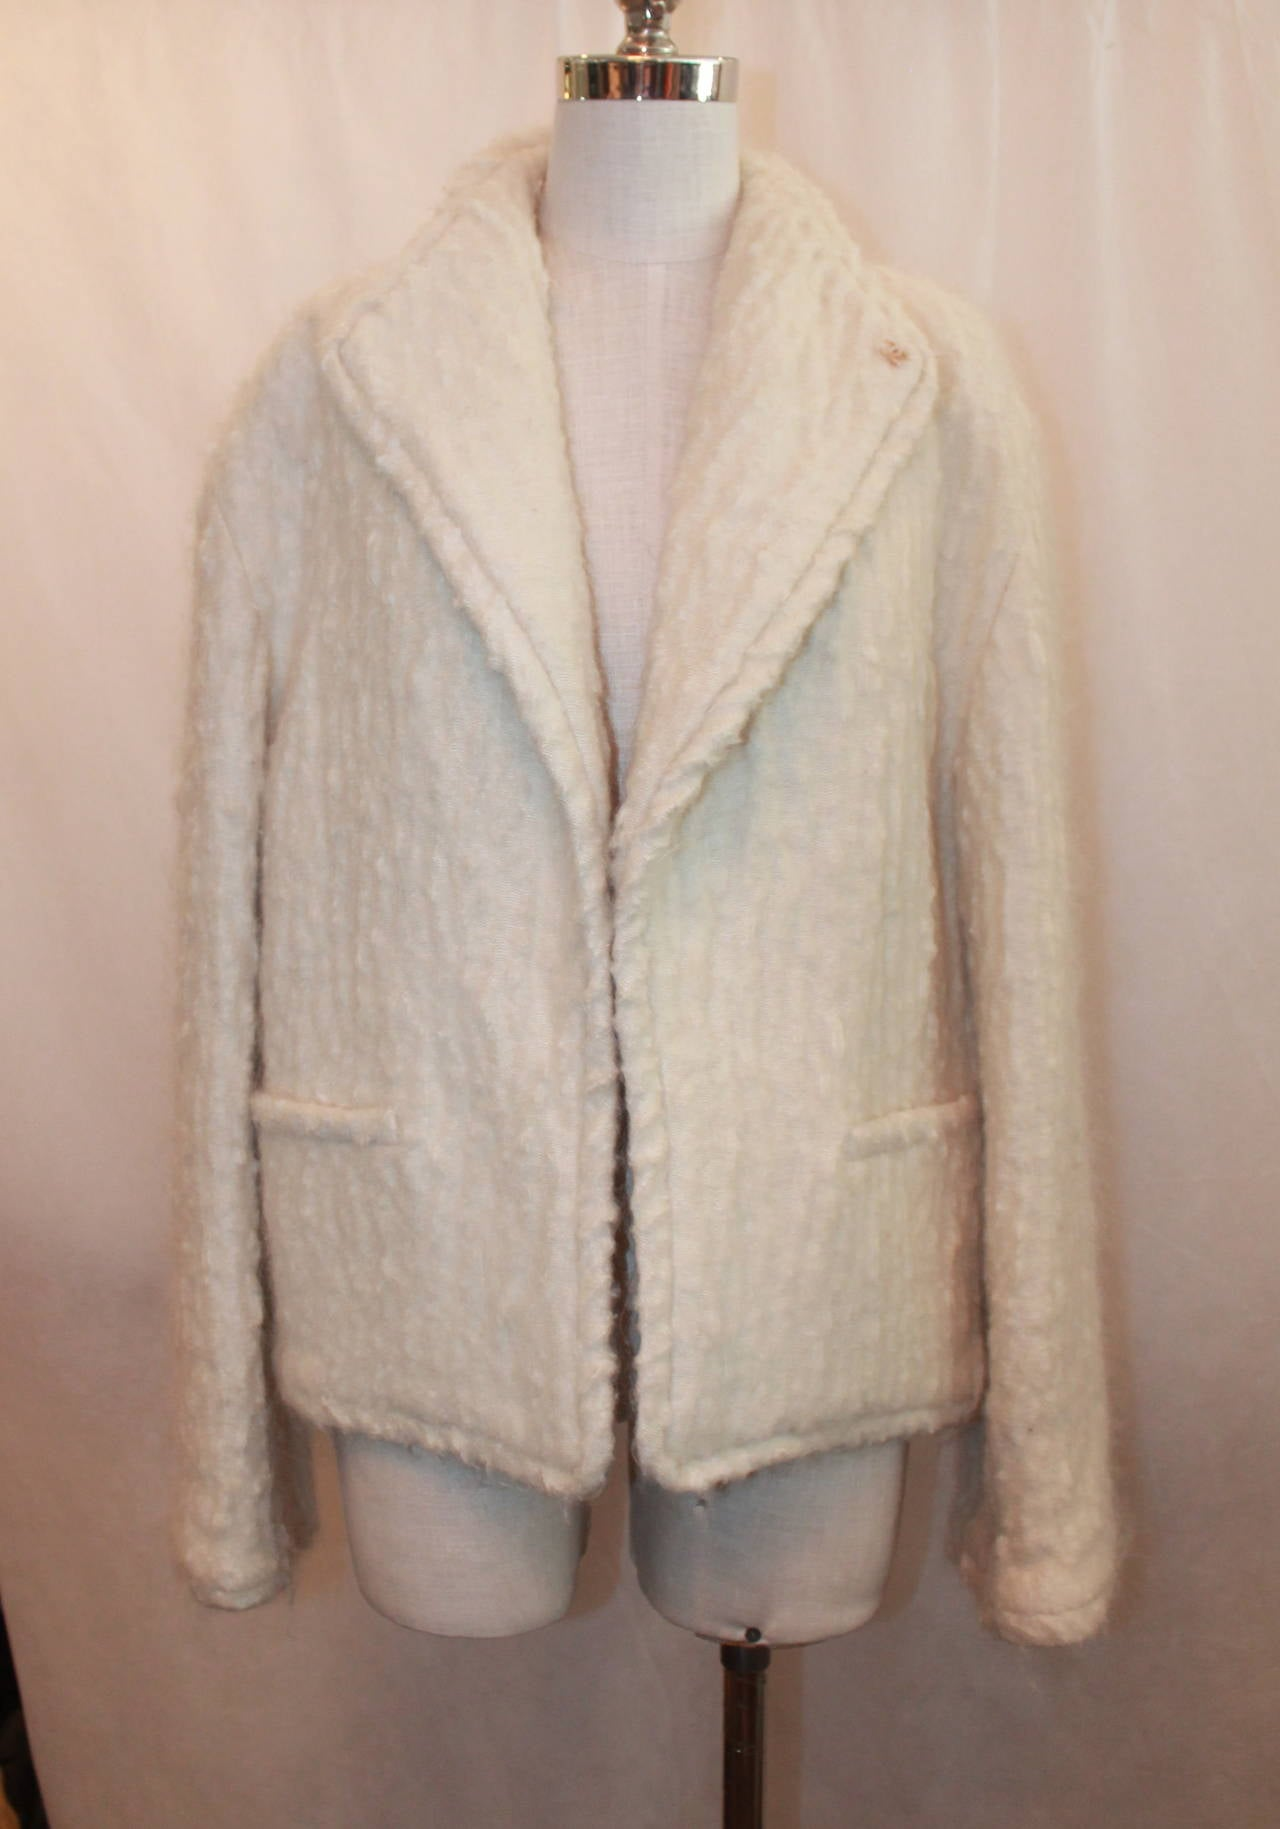 "Chanel 1998 Vintage Creme Mohair & Wool Blend Jacket - 38. This jacket is in excellent condition with minor signs of wear on the fabric. It has 2 front pockets and a mother of pearl ""CC"" emblem as seen on image 3. It also has silk lining."